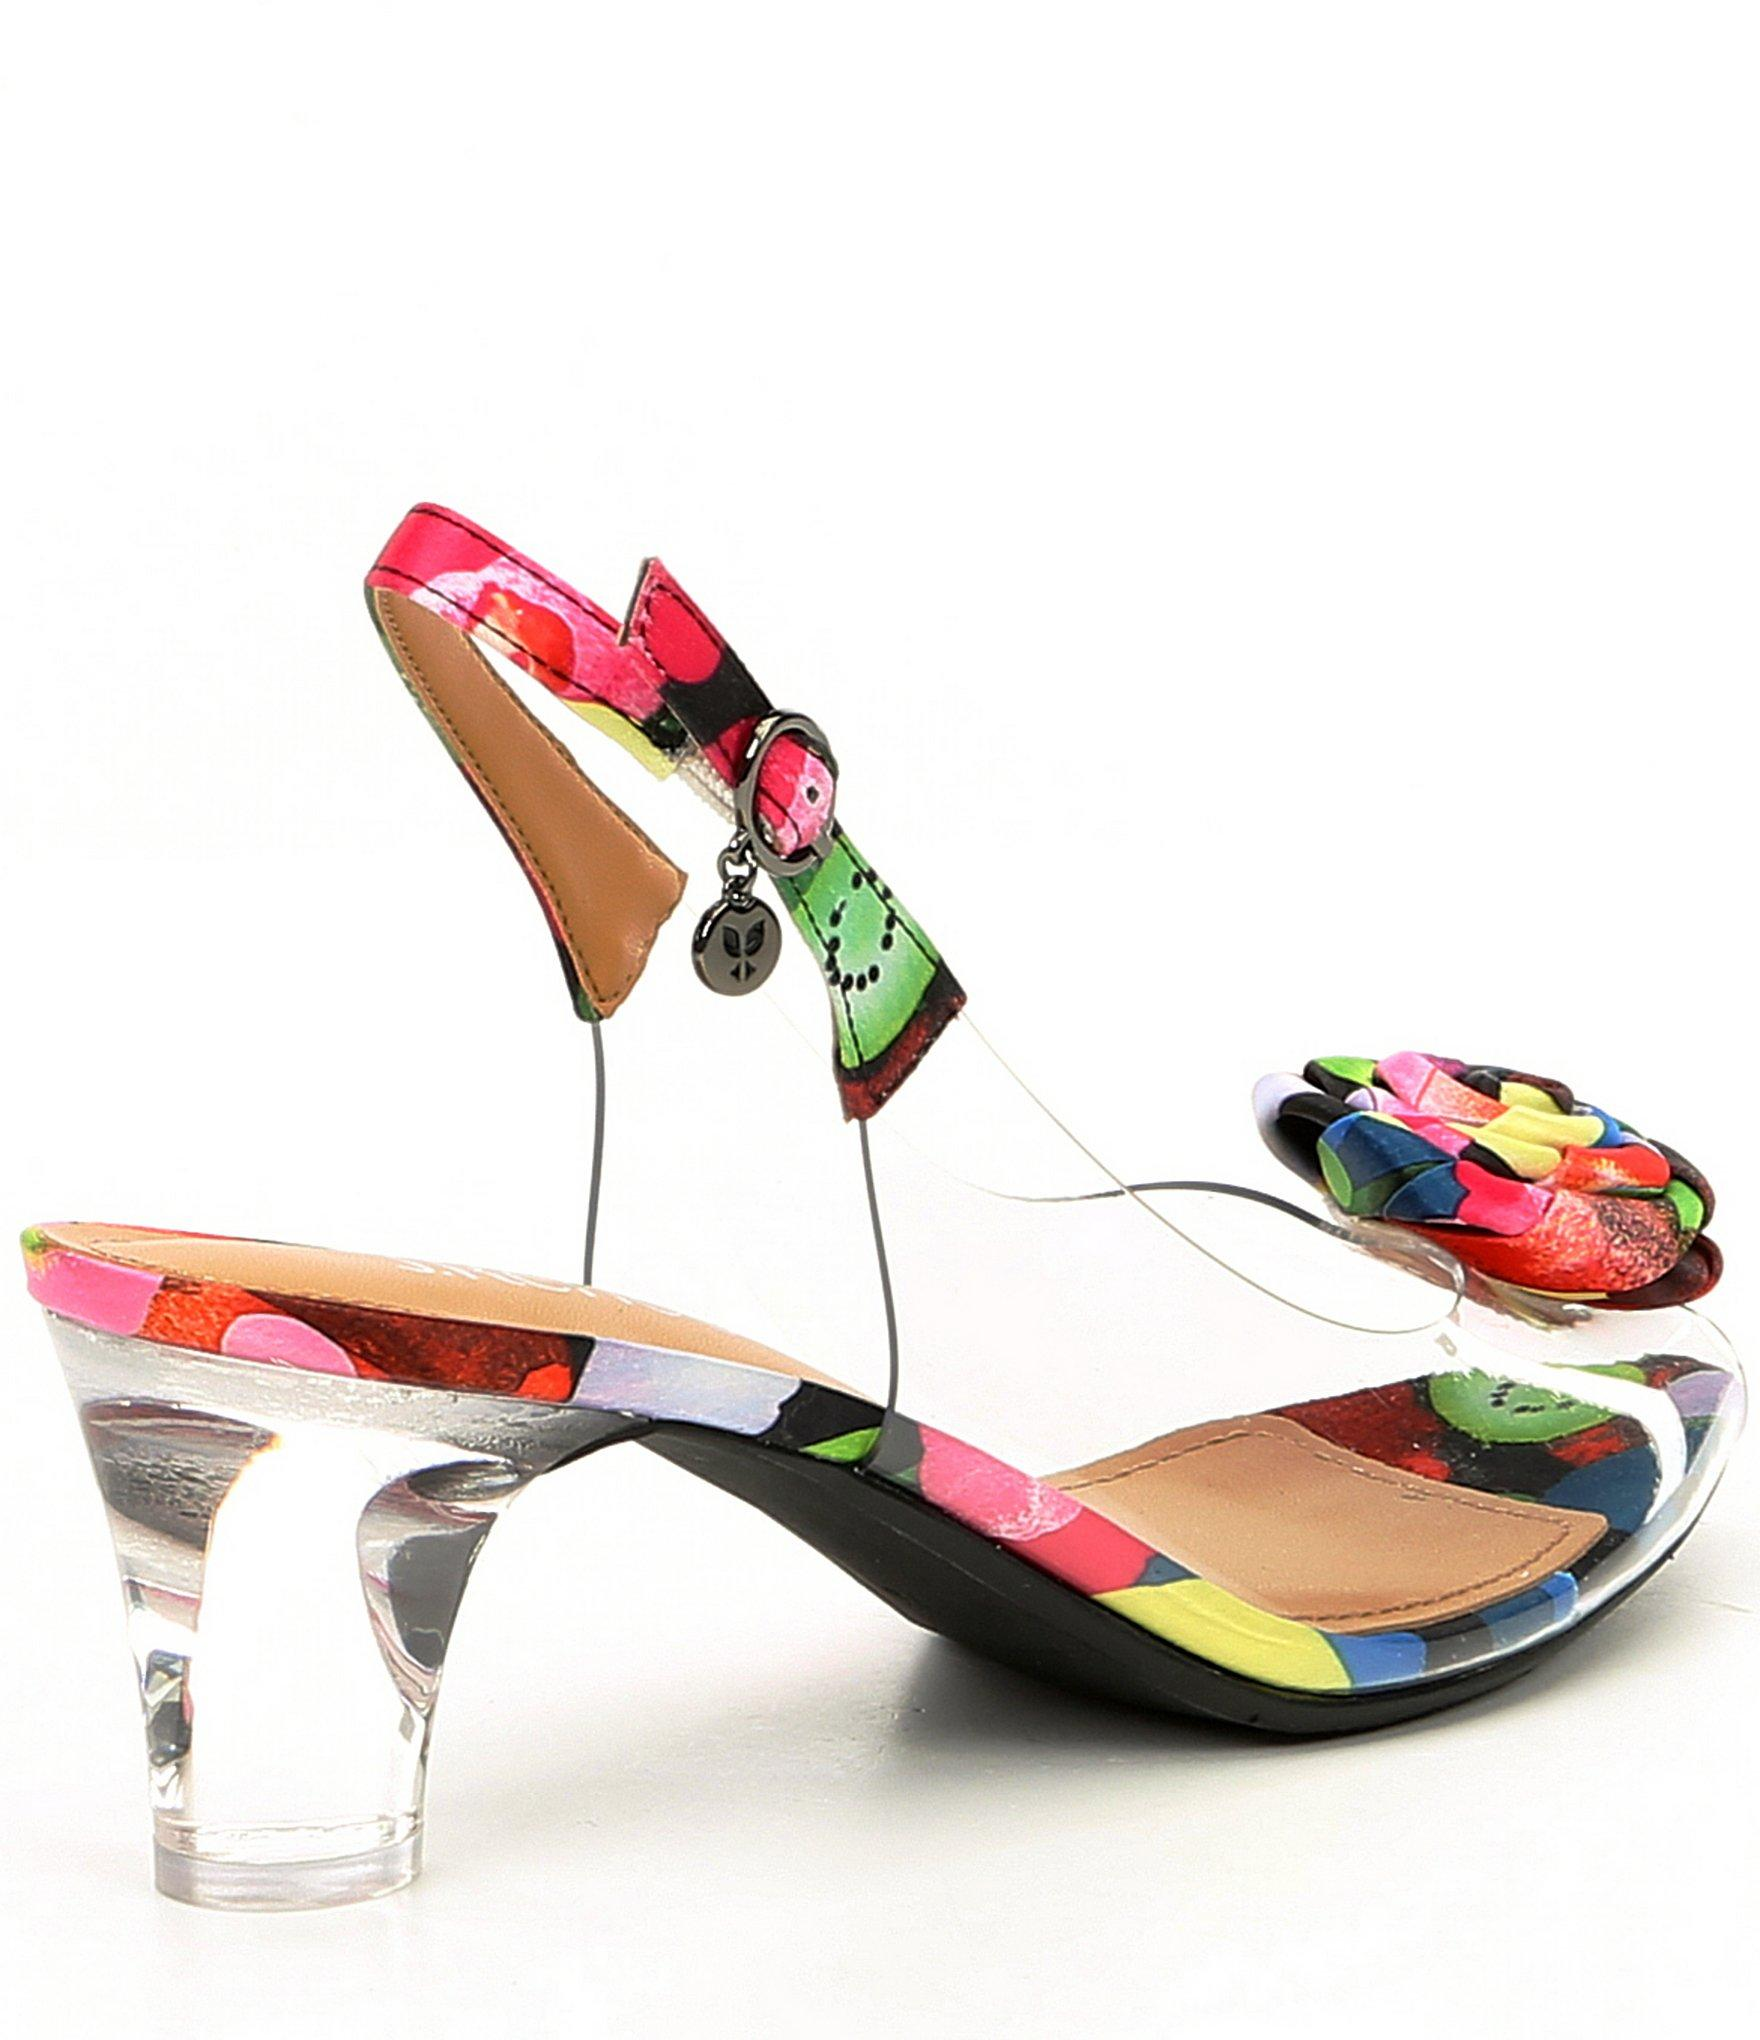 abdfc8c2604 J. Reneé - Multicolor Dailona Vinyl And Floral Print Sling Pumps - Lyst.  View fullscreen